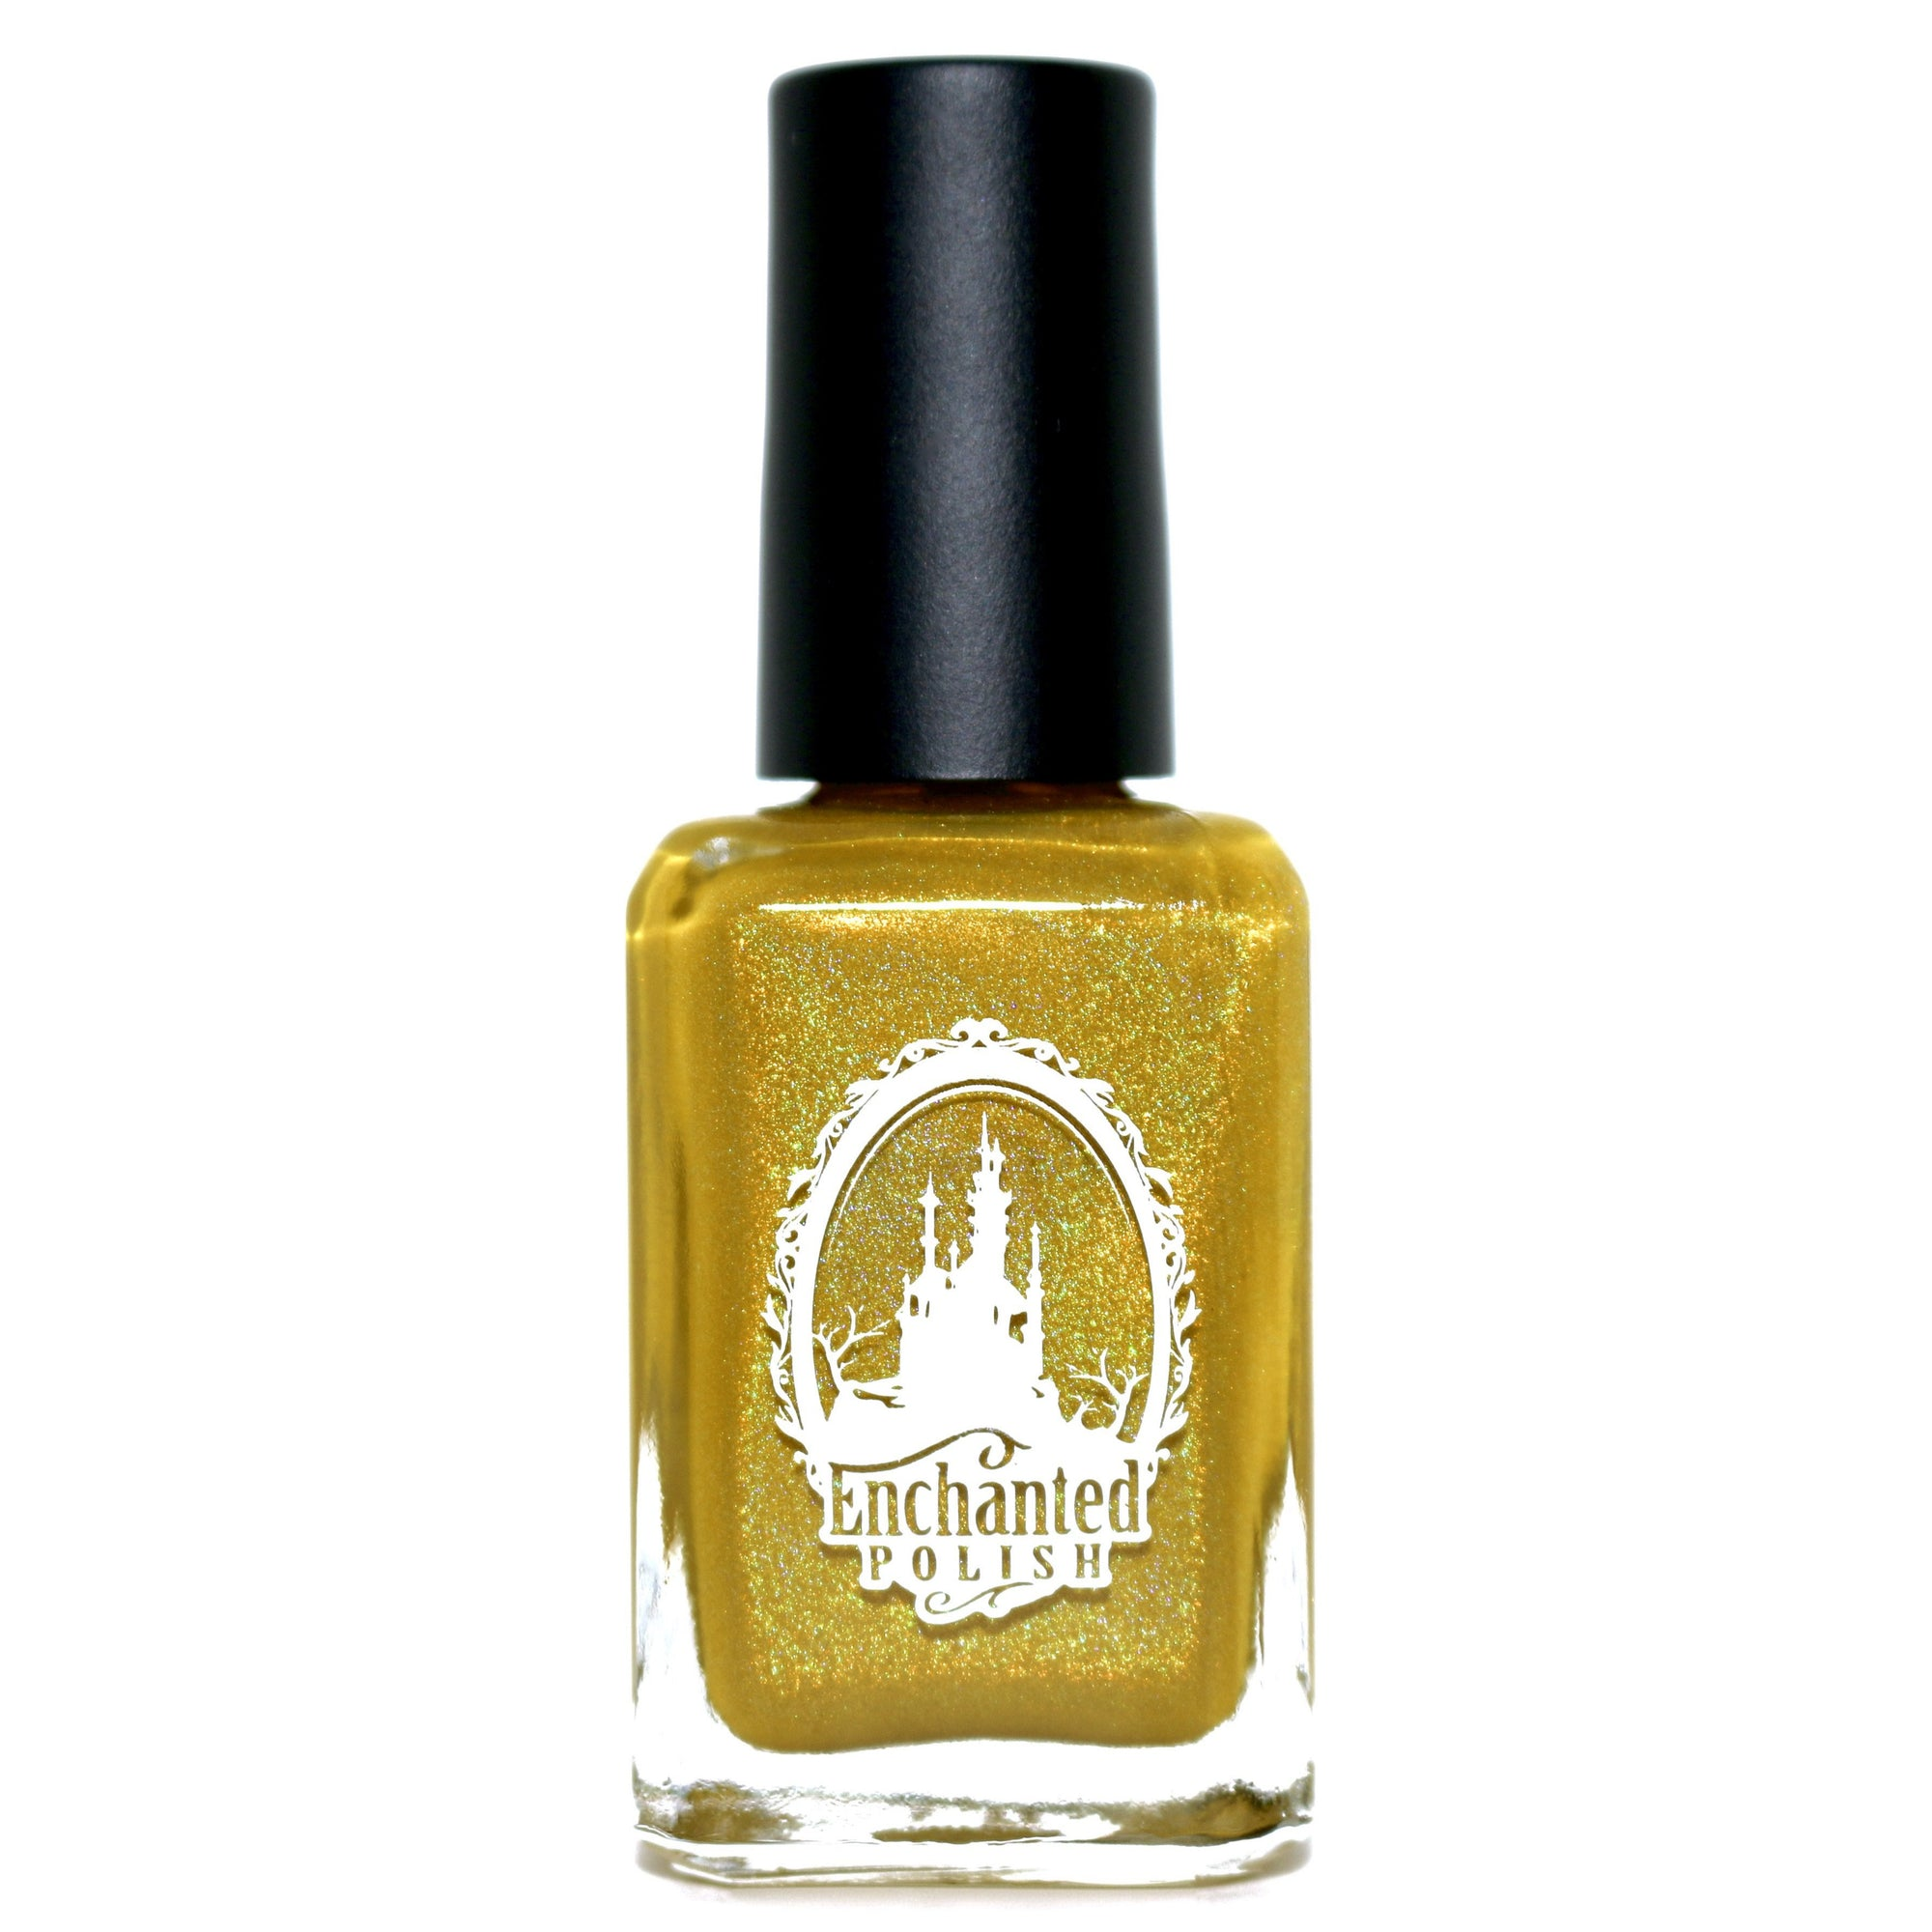 *PRE-ORDER* Enchanted Polish - Sunshine & Rainbows